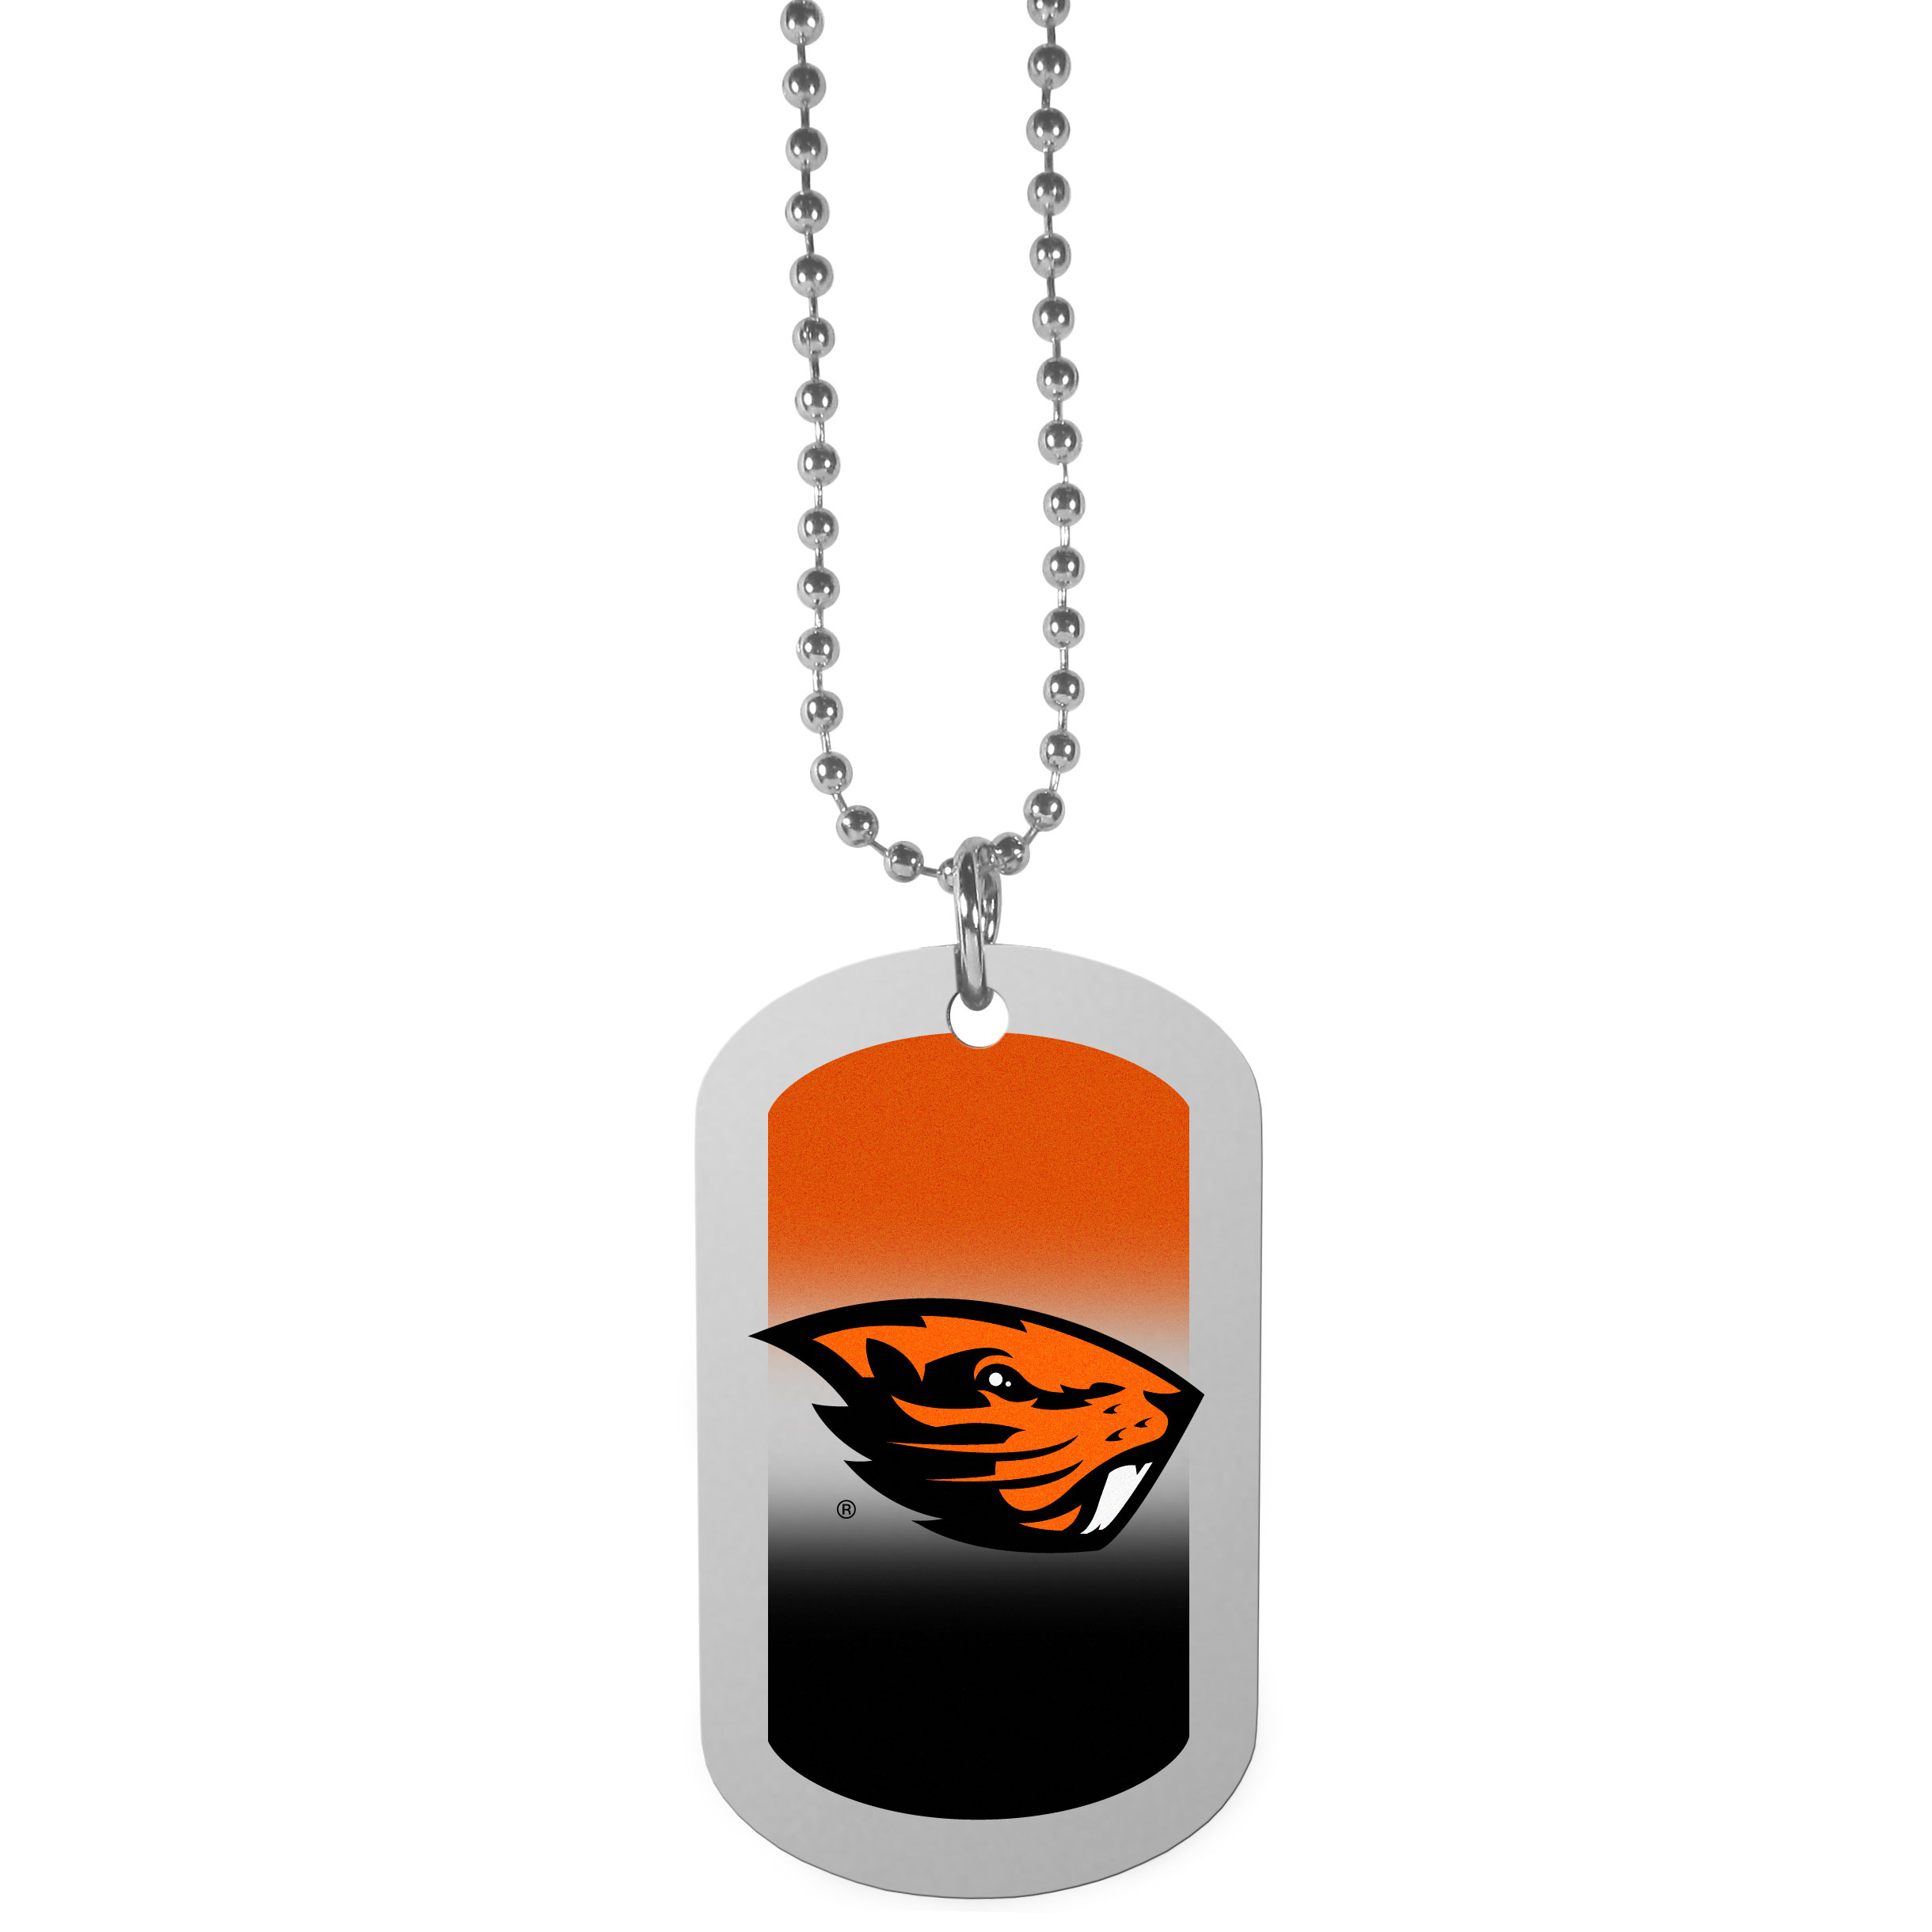 Oregon St. Beavers Team Tag Necklace - Dog tag necklaces are a fashion statement that is here to stay. The sporty version of the classic tag features a gradient print in team colors featuring a full color team logo over a high polish tag to create a bold and sporty look. The tag comes on a 26 inch ball chain with a ball and joint clasp. Any Oregon St. Beavers would be proud to wear this attractive fashion accessory.